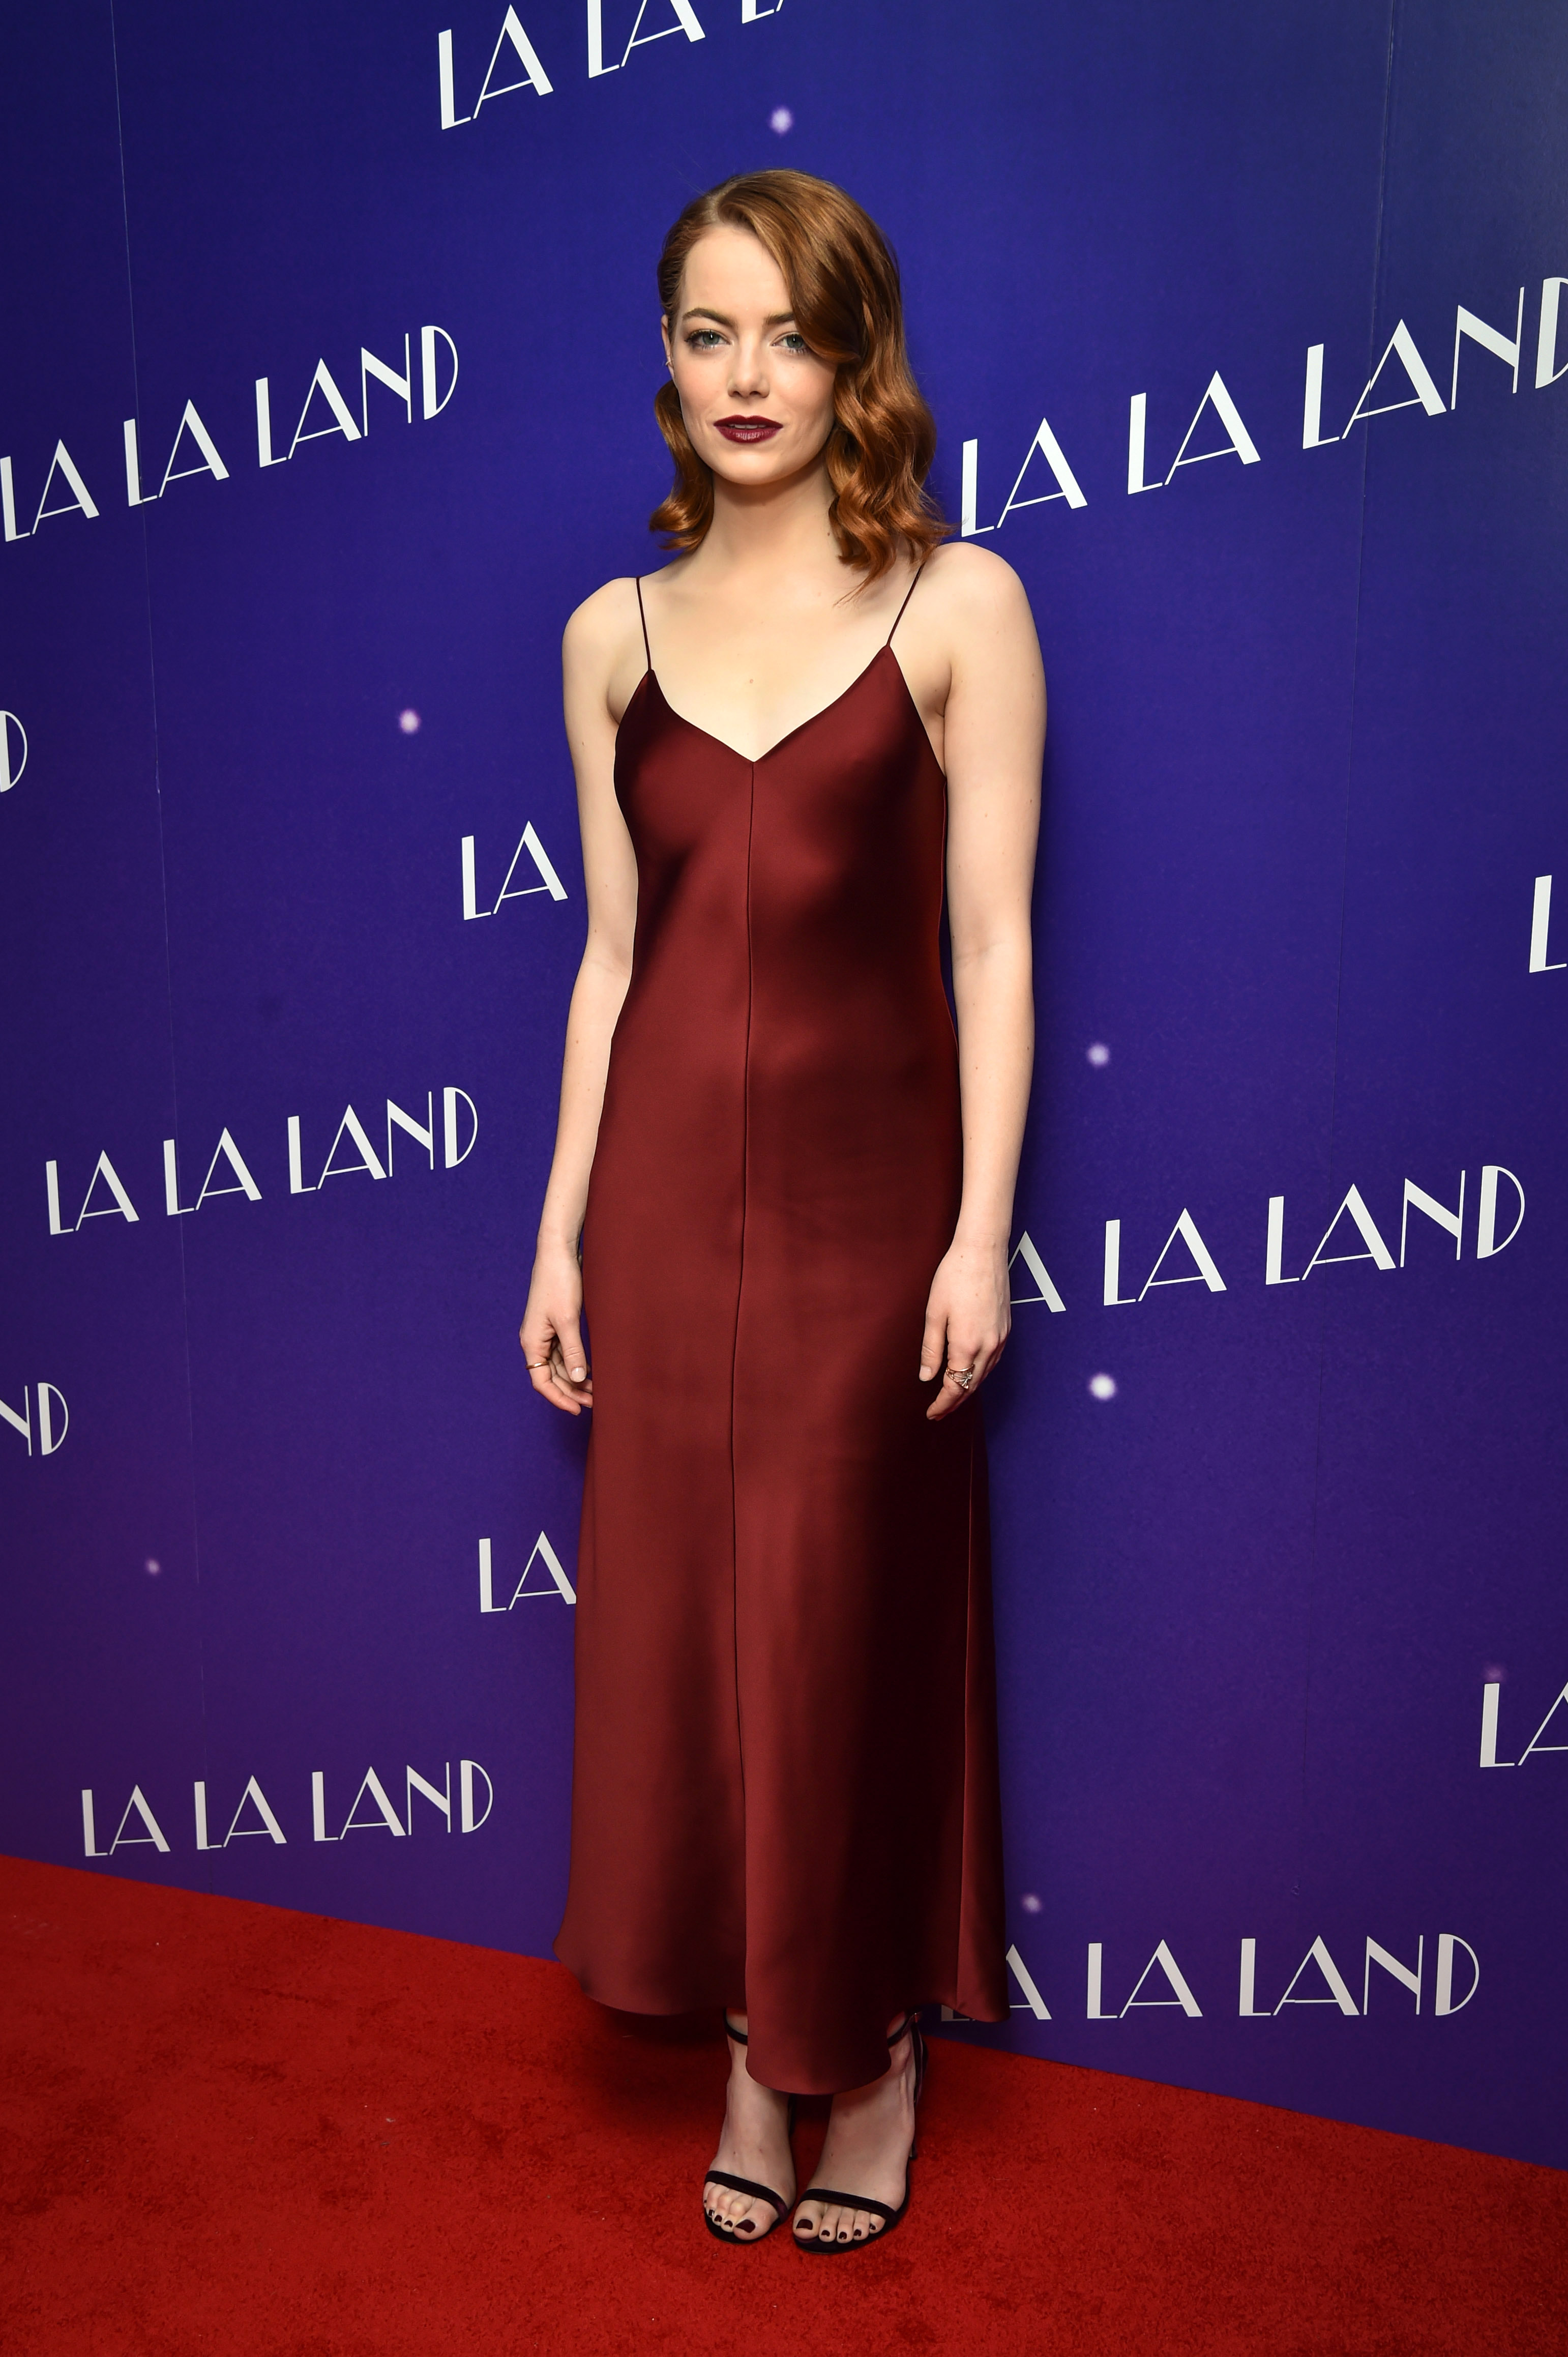 Emma Stone attending a gala screening for La La Land held at Ham Yard Hotel, London.  Picture date: Thursday January 12th, 2017., Image: 310659187, License: Rights-managed, Restrictions: WCDIRECT, Model Release: no, Credit line: Profimedia, Press Association